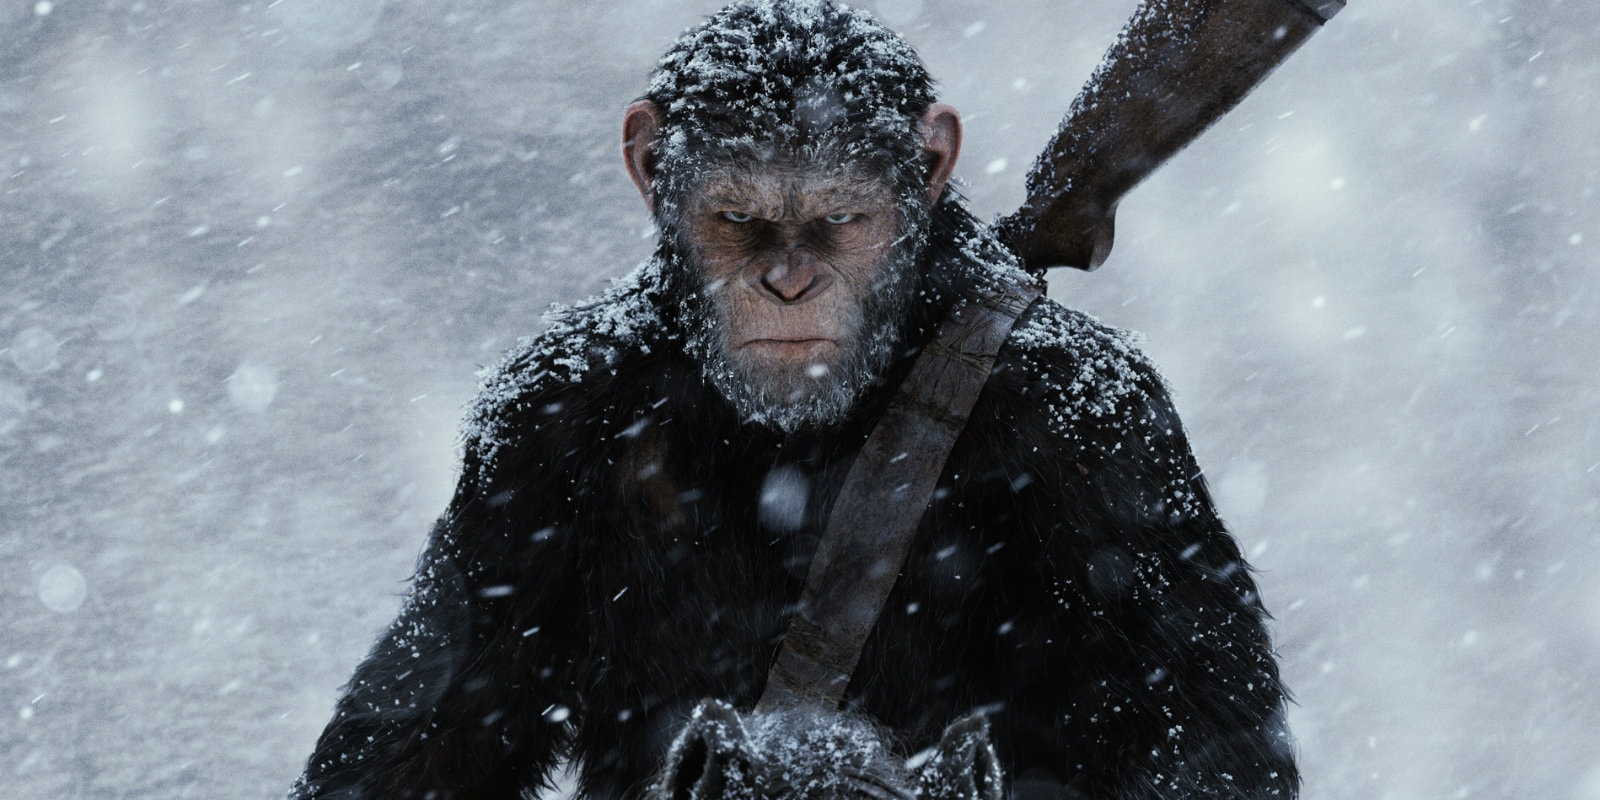 War for the Planet of the Apes Screensavers